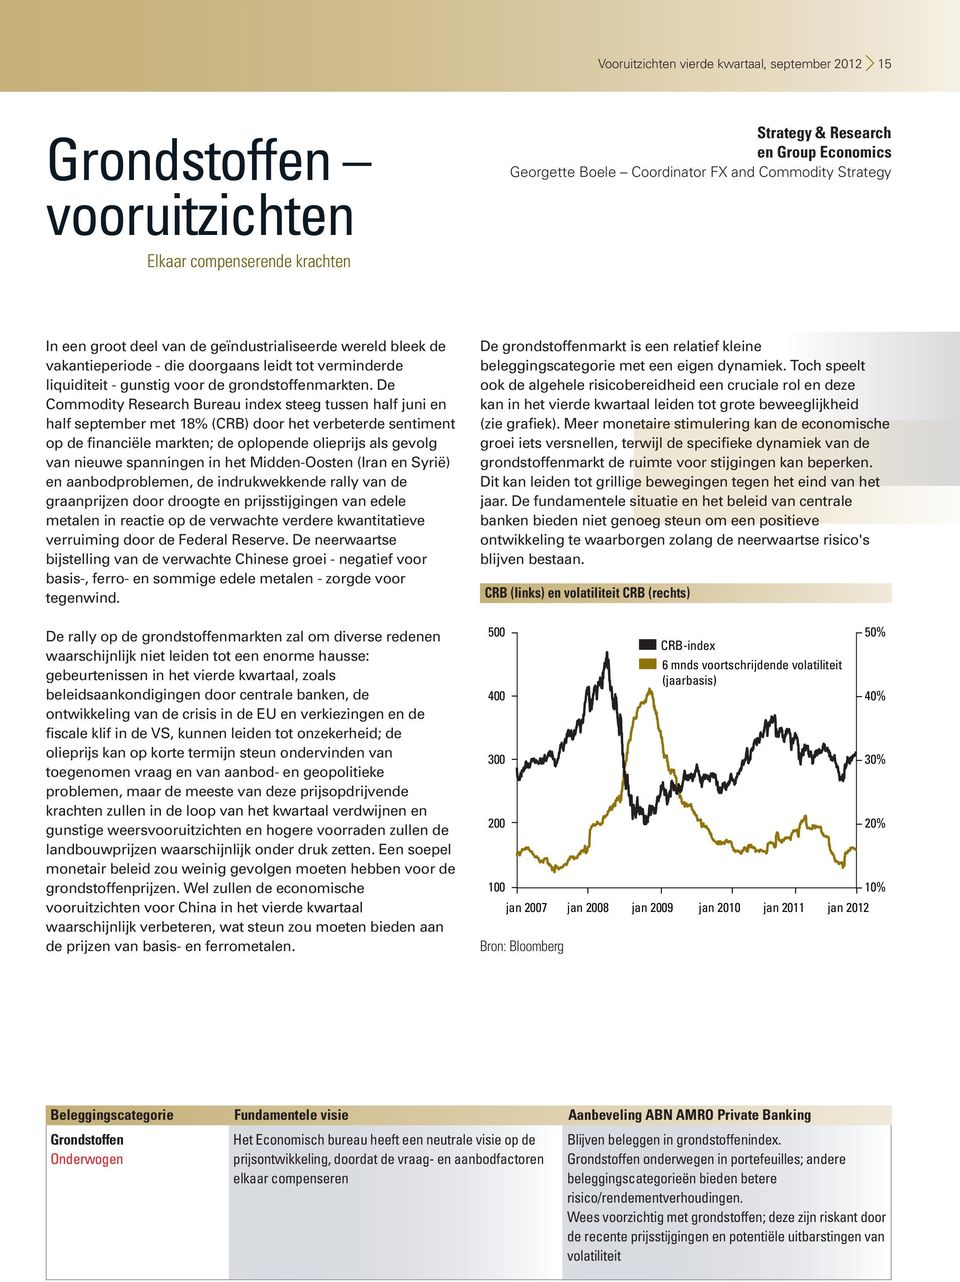 De Commodity Research Bureau index steeg tussen half juni en half september met 18% (CRB) door het verbeterde sentiment op de financiële markten; de oplopende olieprijs als gevolg van nieuwe